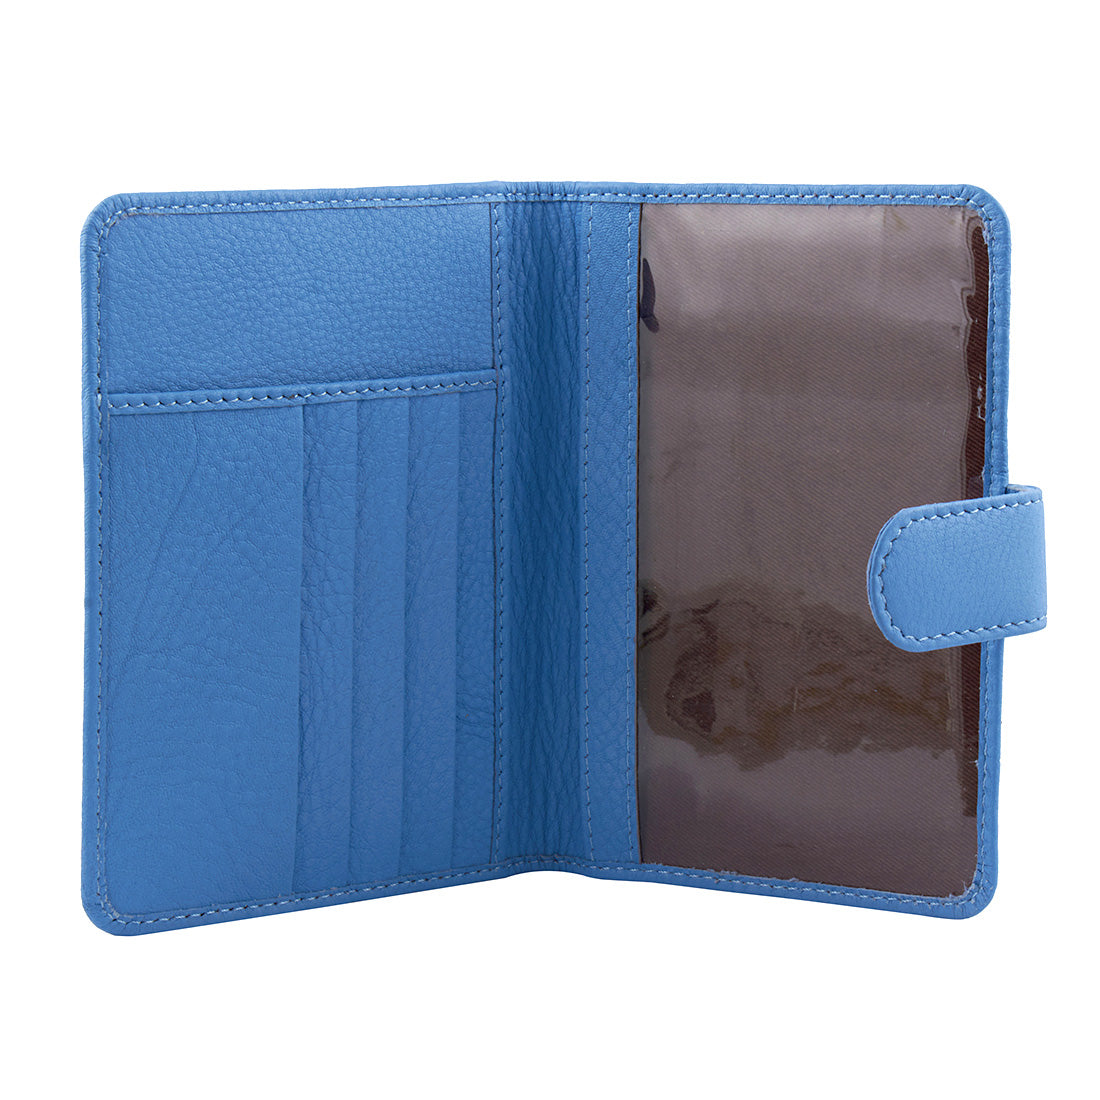 Genuine Gritty Leather Sky Blue Unisex Multi-Purpose Holder